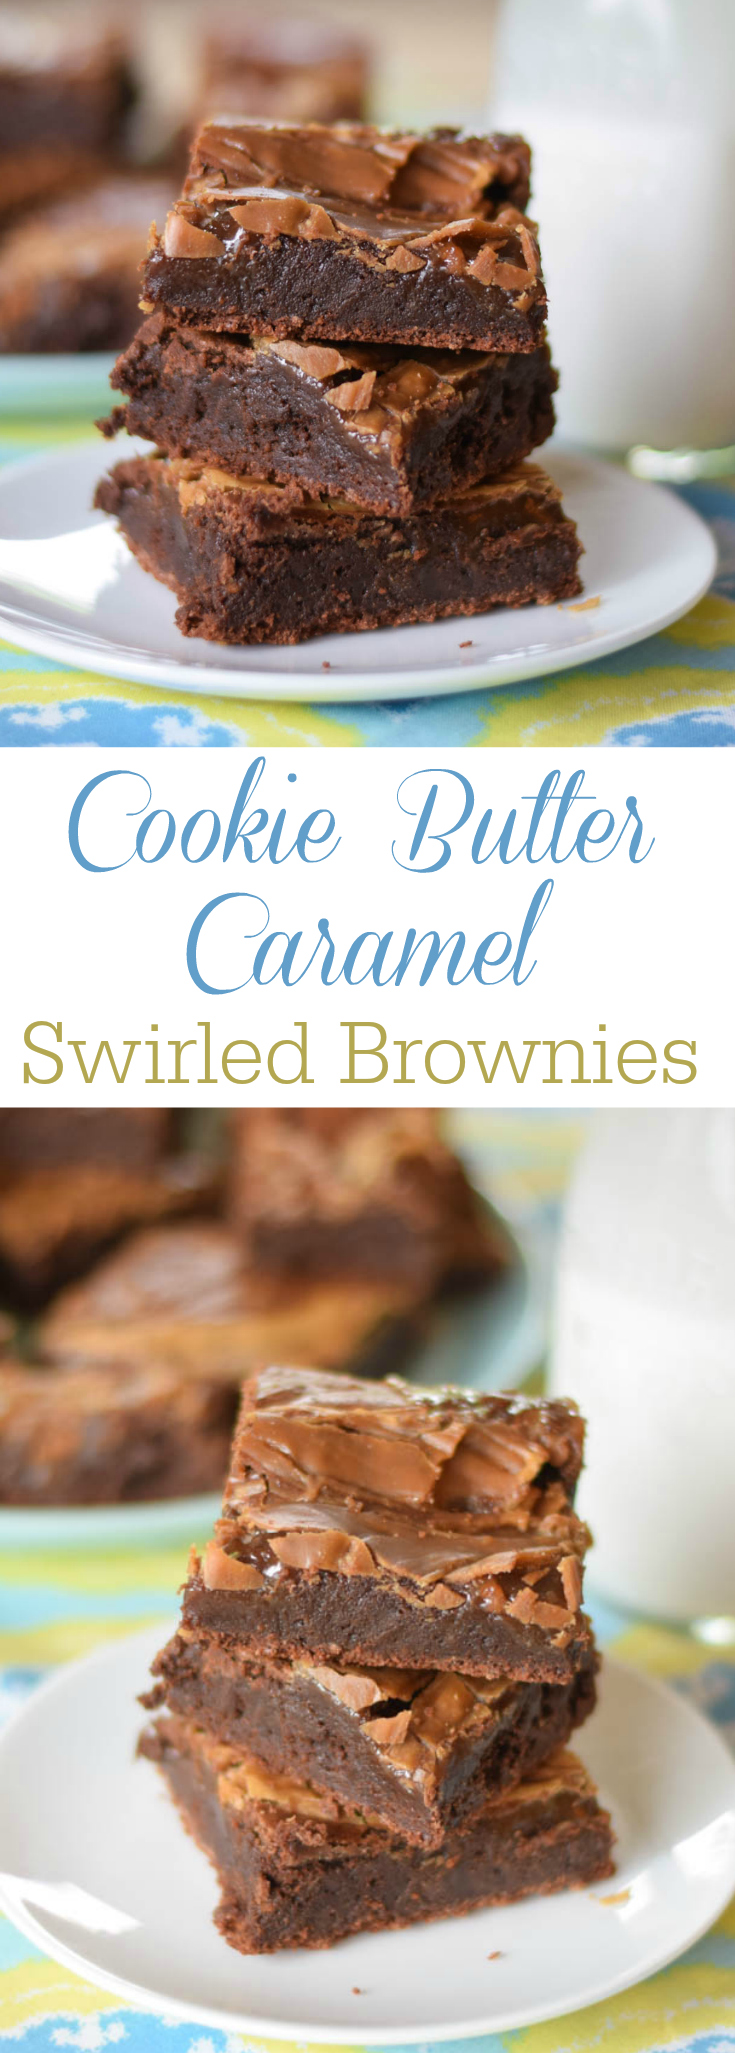 Cookie Butter Caramel Swirled Brownies